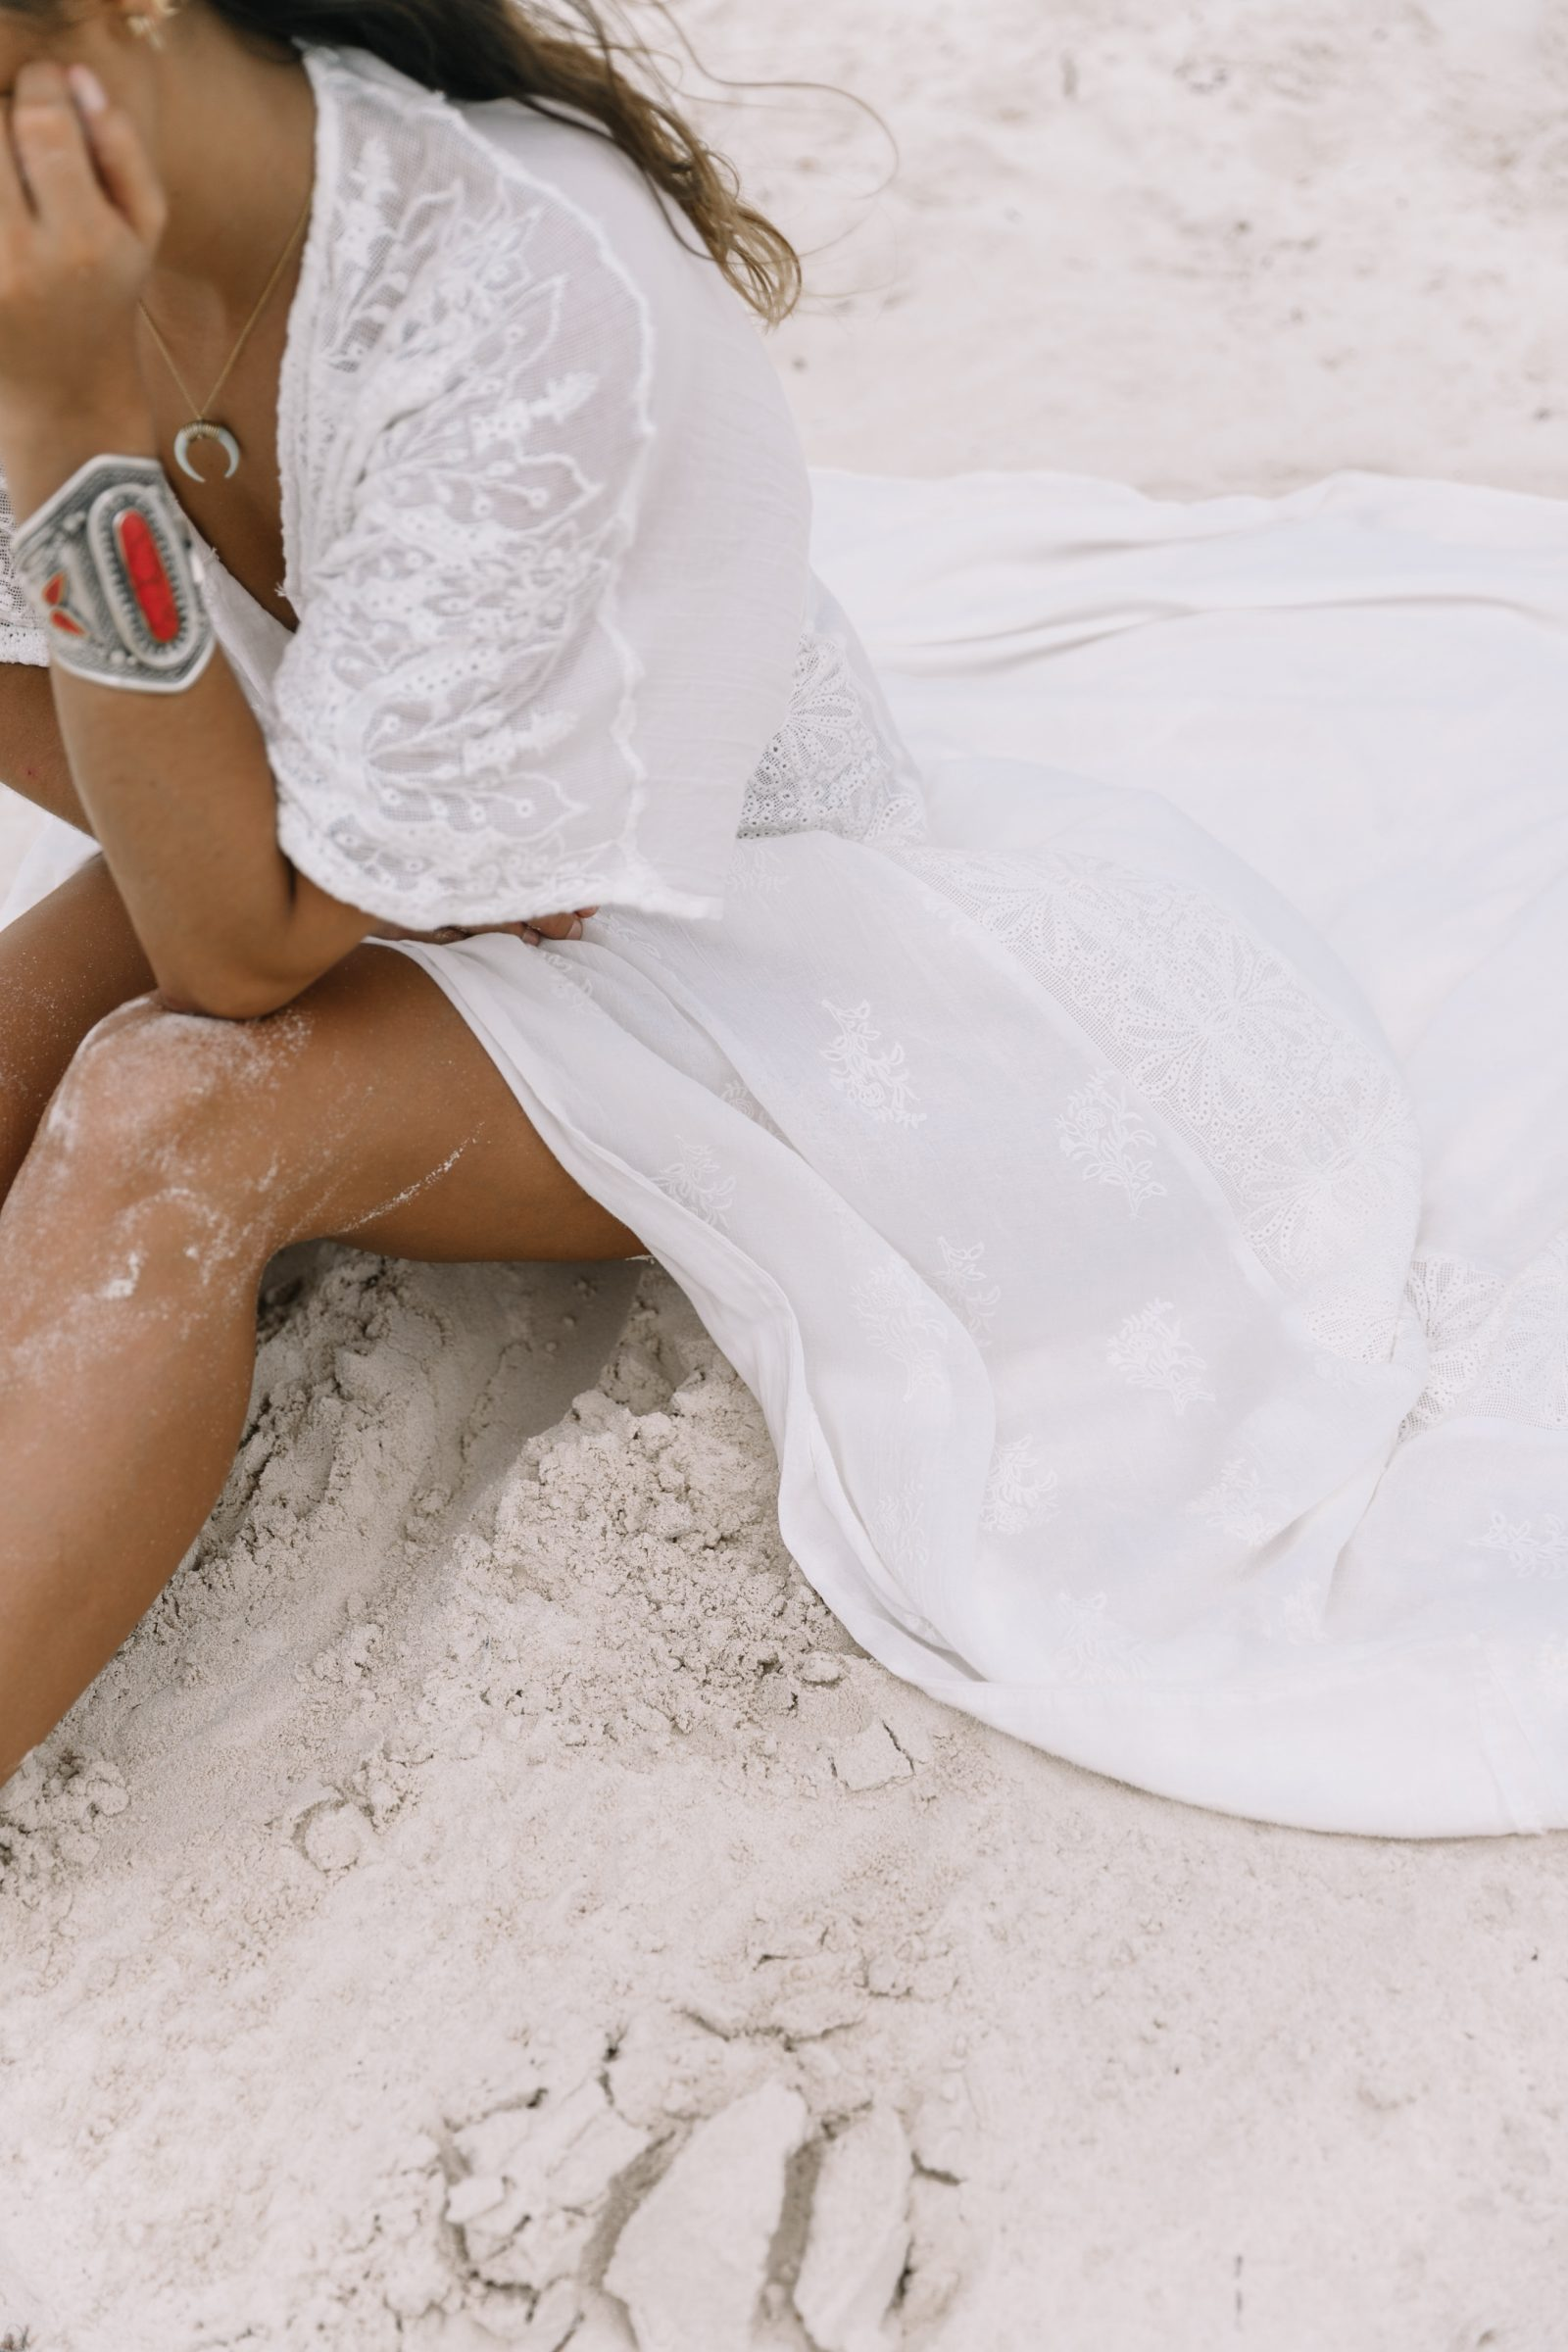 white_long_dress-boho_style-tulum_mexico-beach-floral_crown-outfit-collage_vintage-49